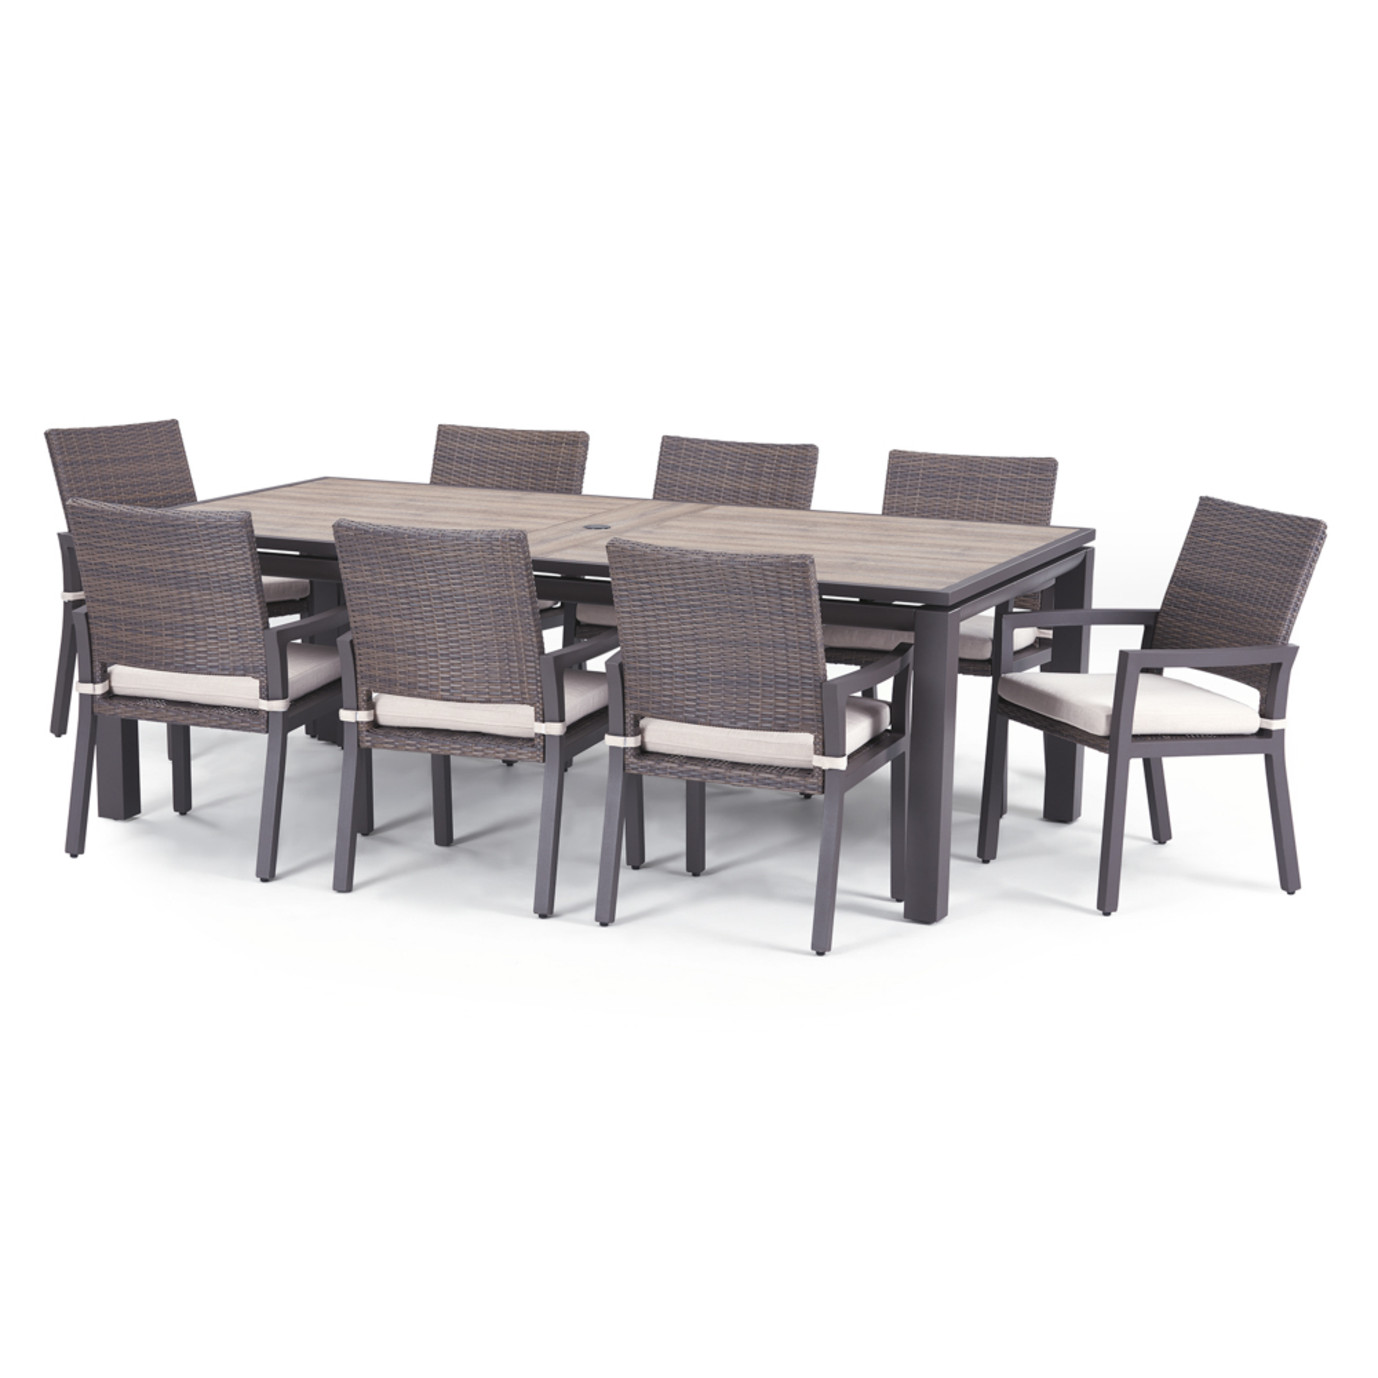 Milea 9 Piece Dining Set - Natural Beige